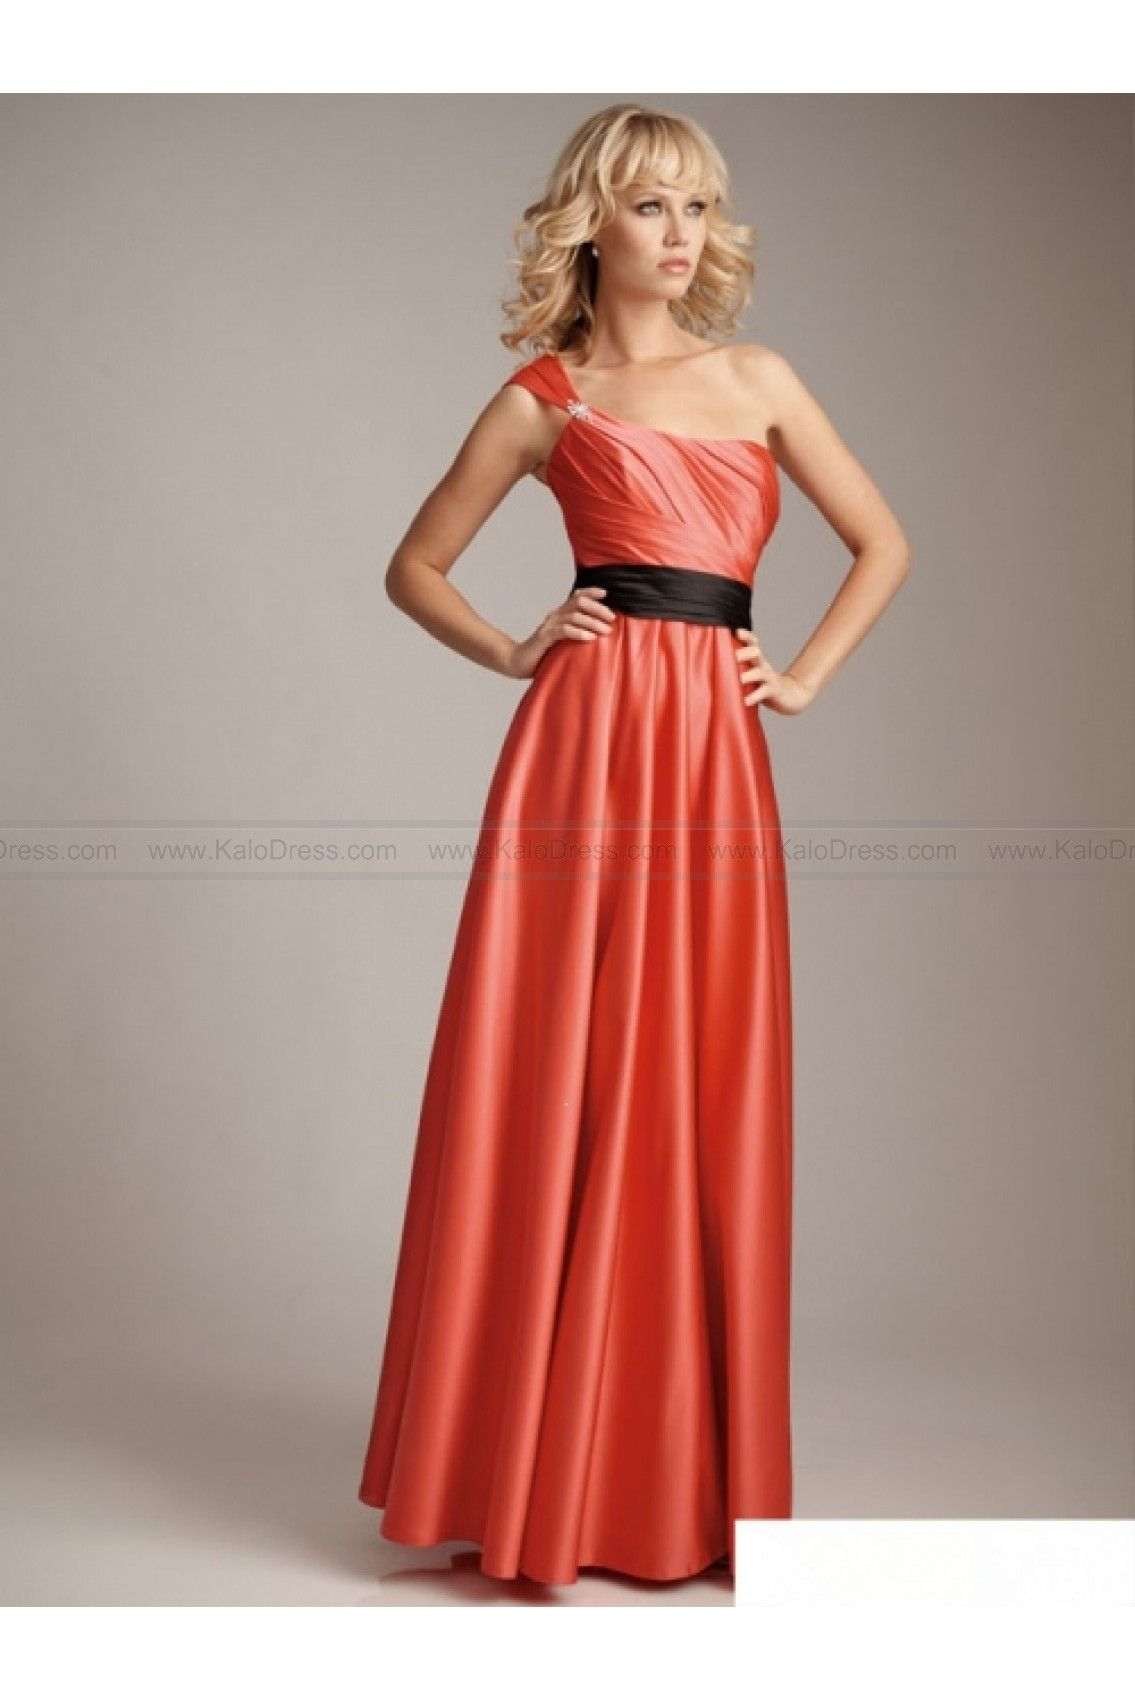 Satin Woven bridesmaid homecoming dresses catalog photo